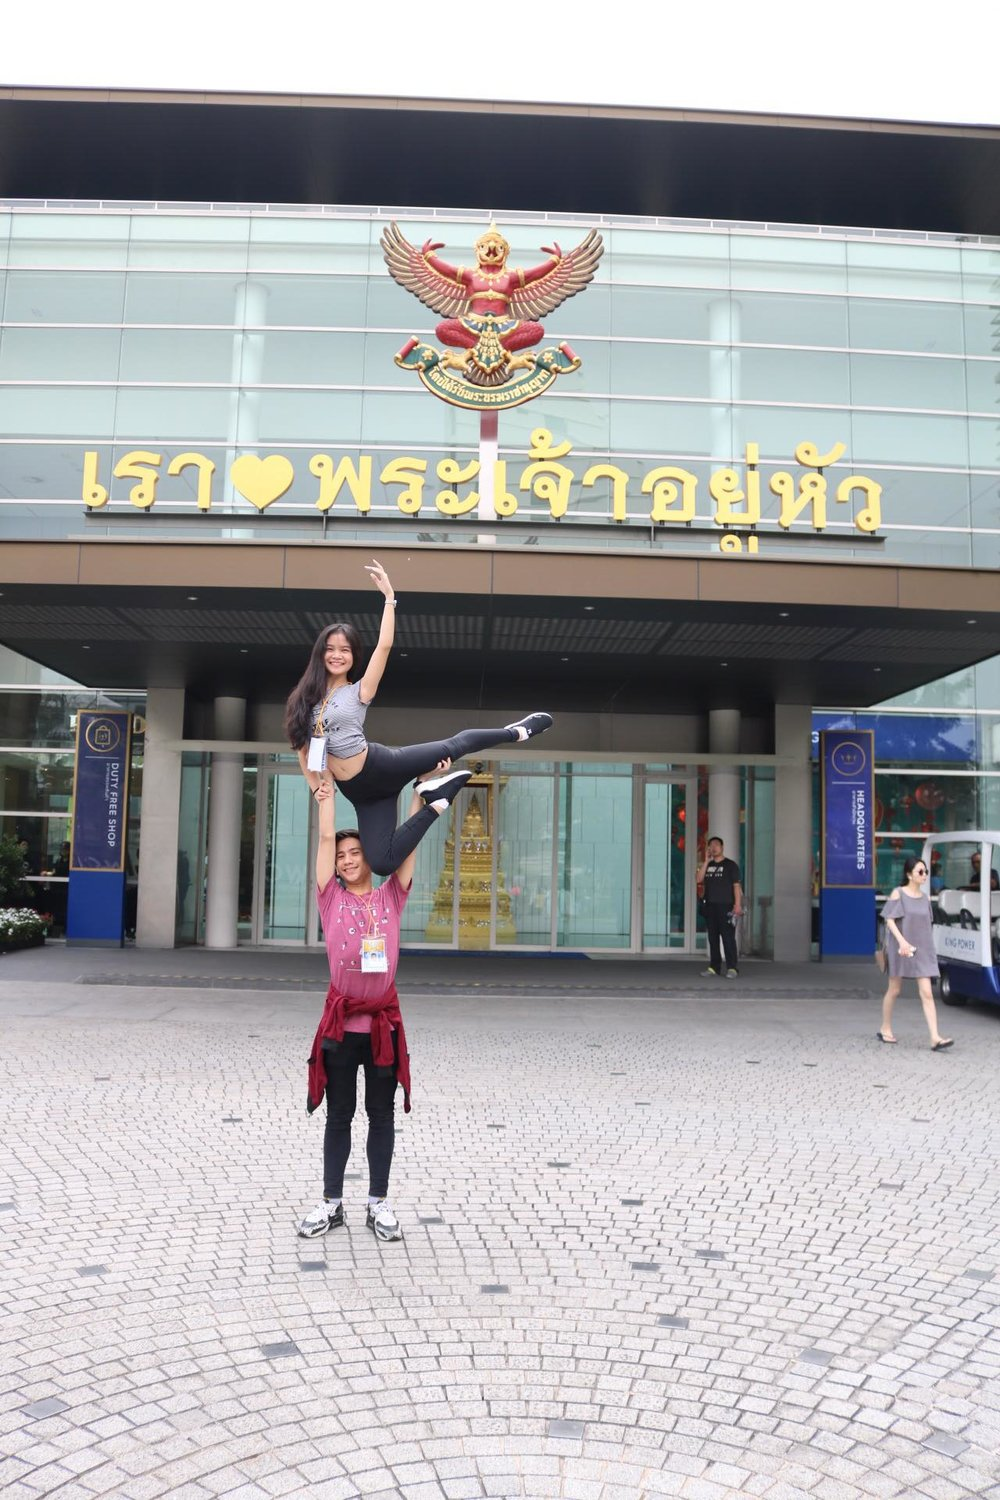 Brian Sevilla and Shaira Comeros practice an overhead lift in front of AKSRA Theater.